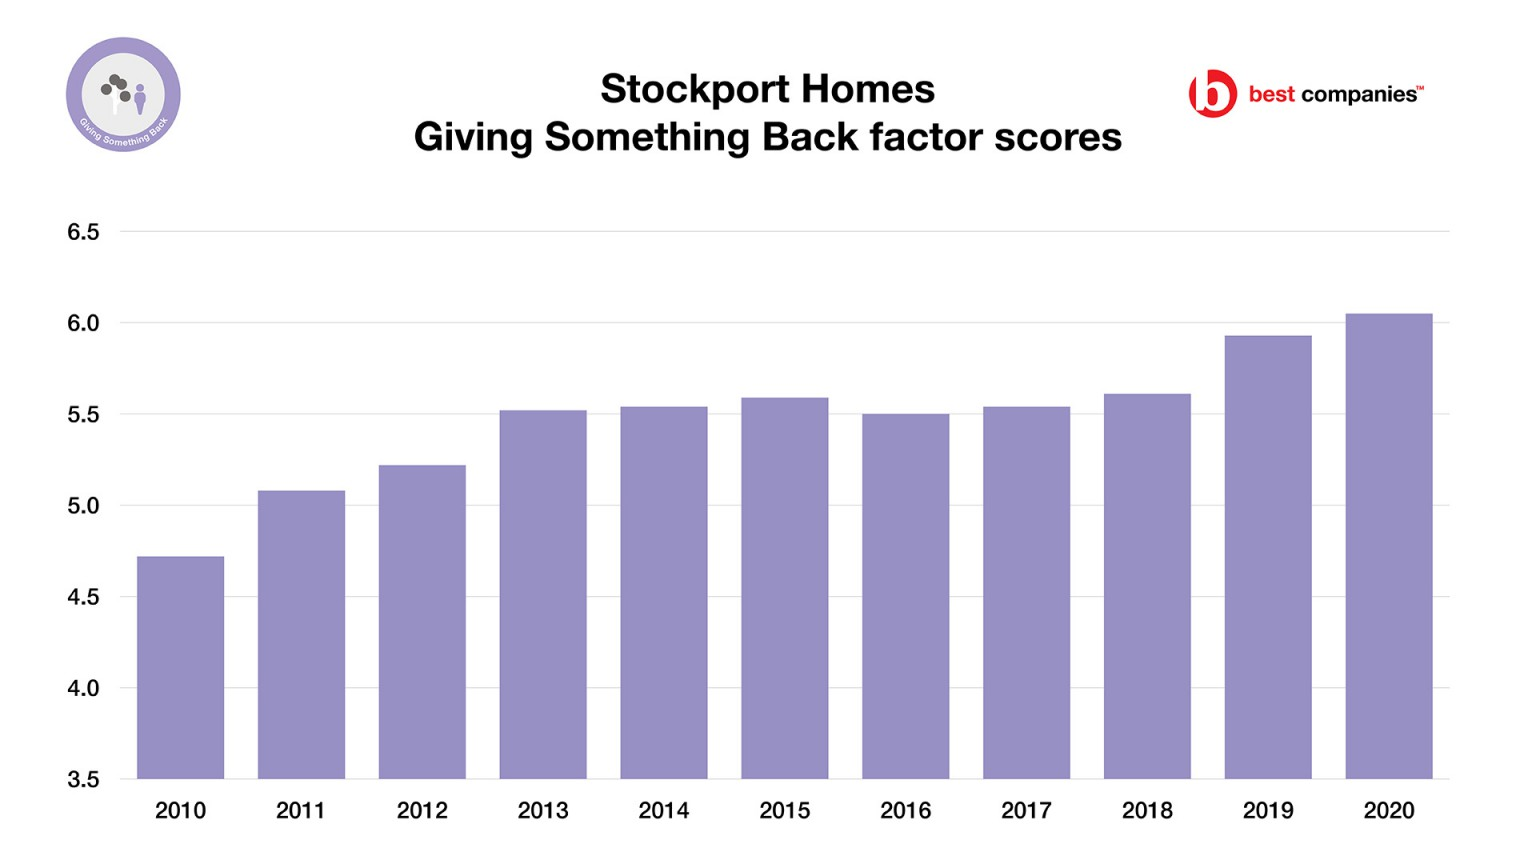 Stockport Homes - Giving Something Back Factor Scores - Employee Engagement